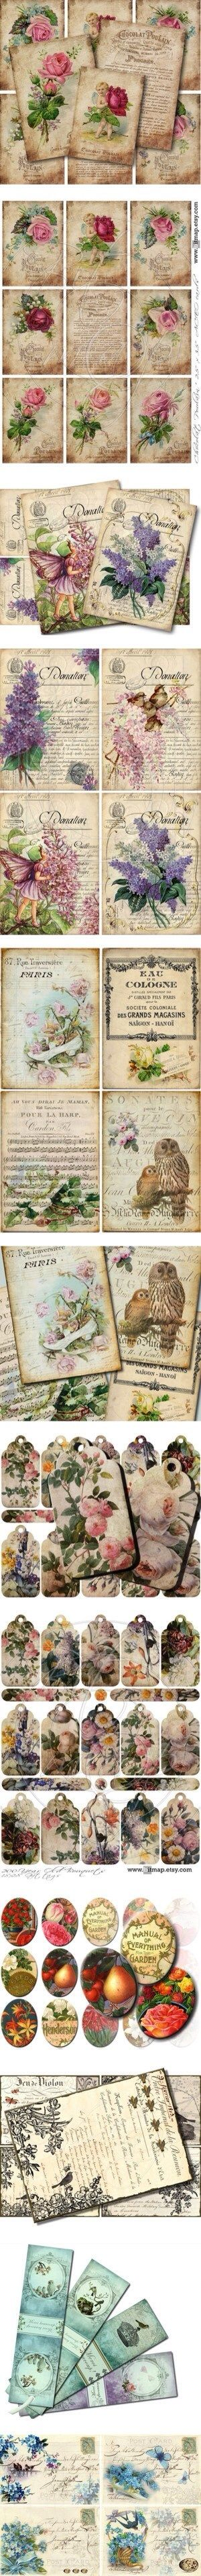 Vintage printables you can purchase on etsy for immediate download, these are designed so hence the paid download lol